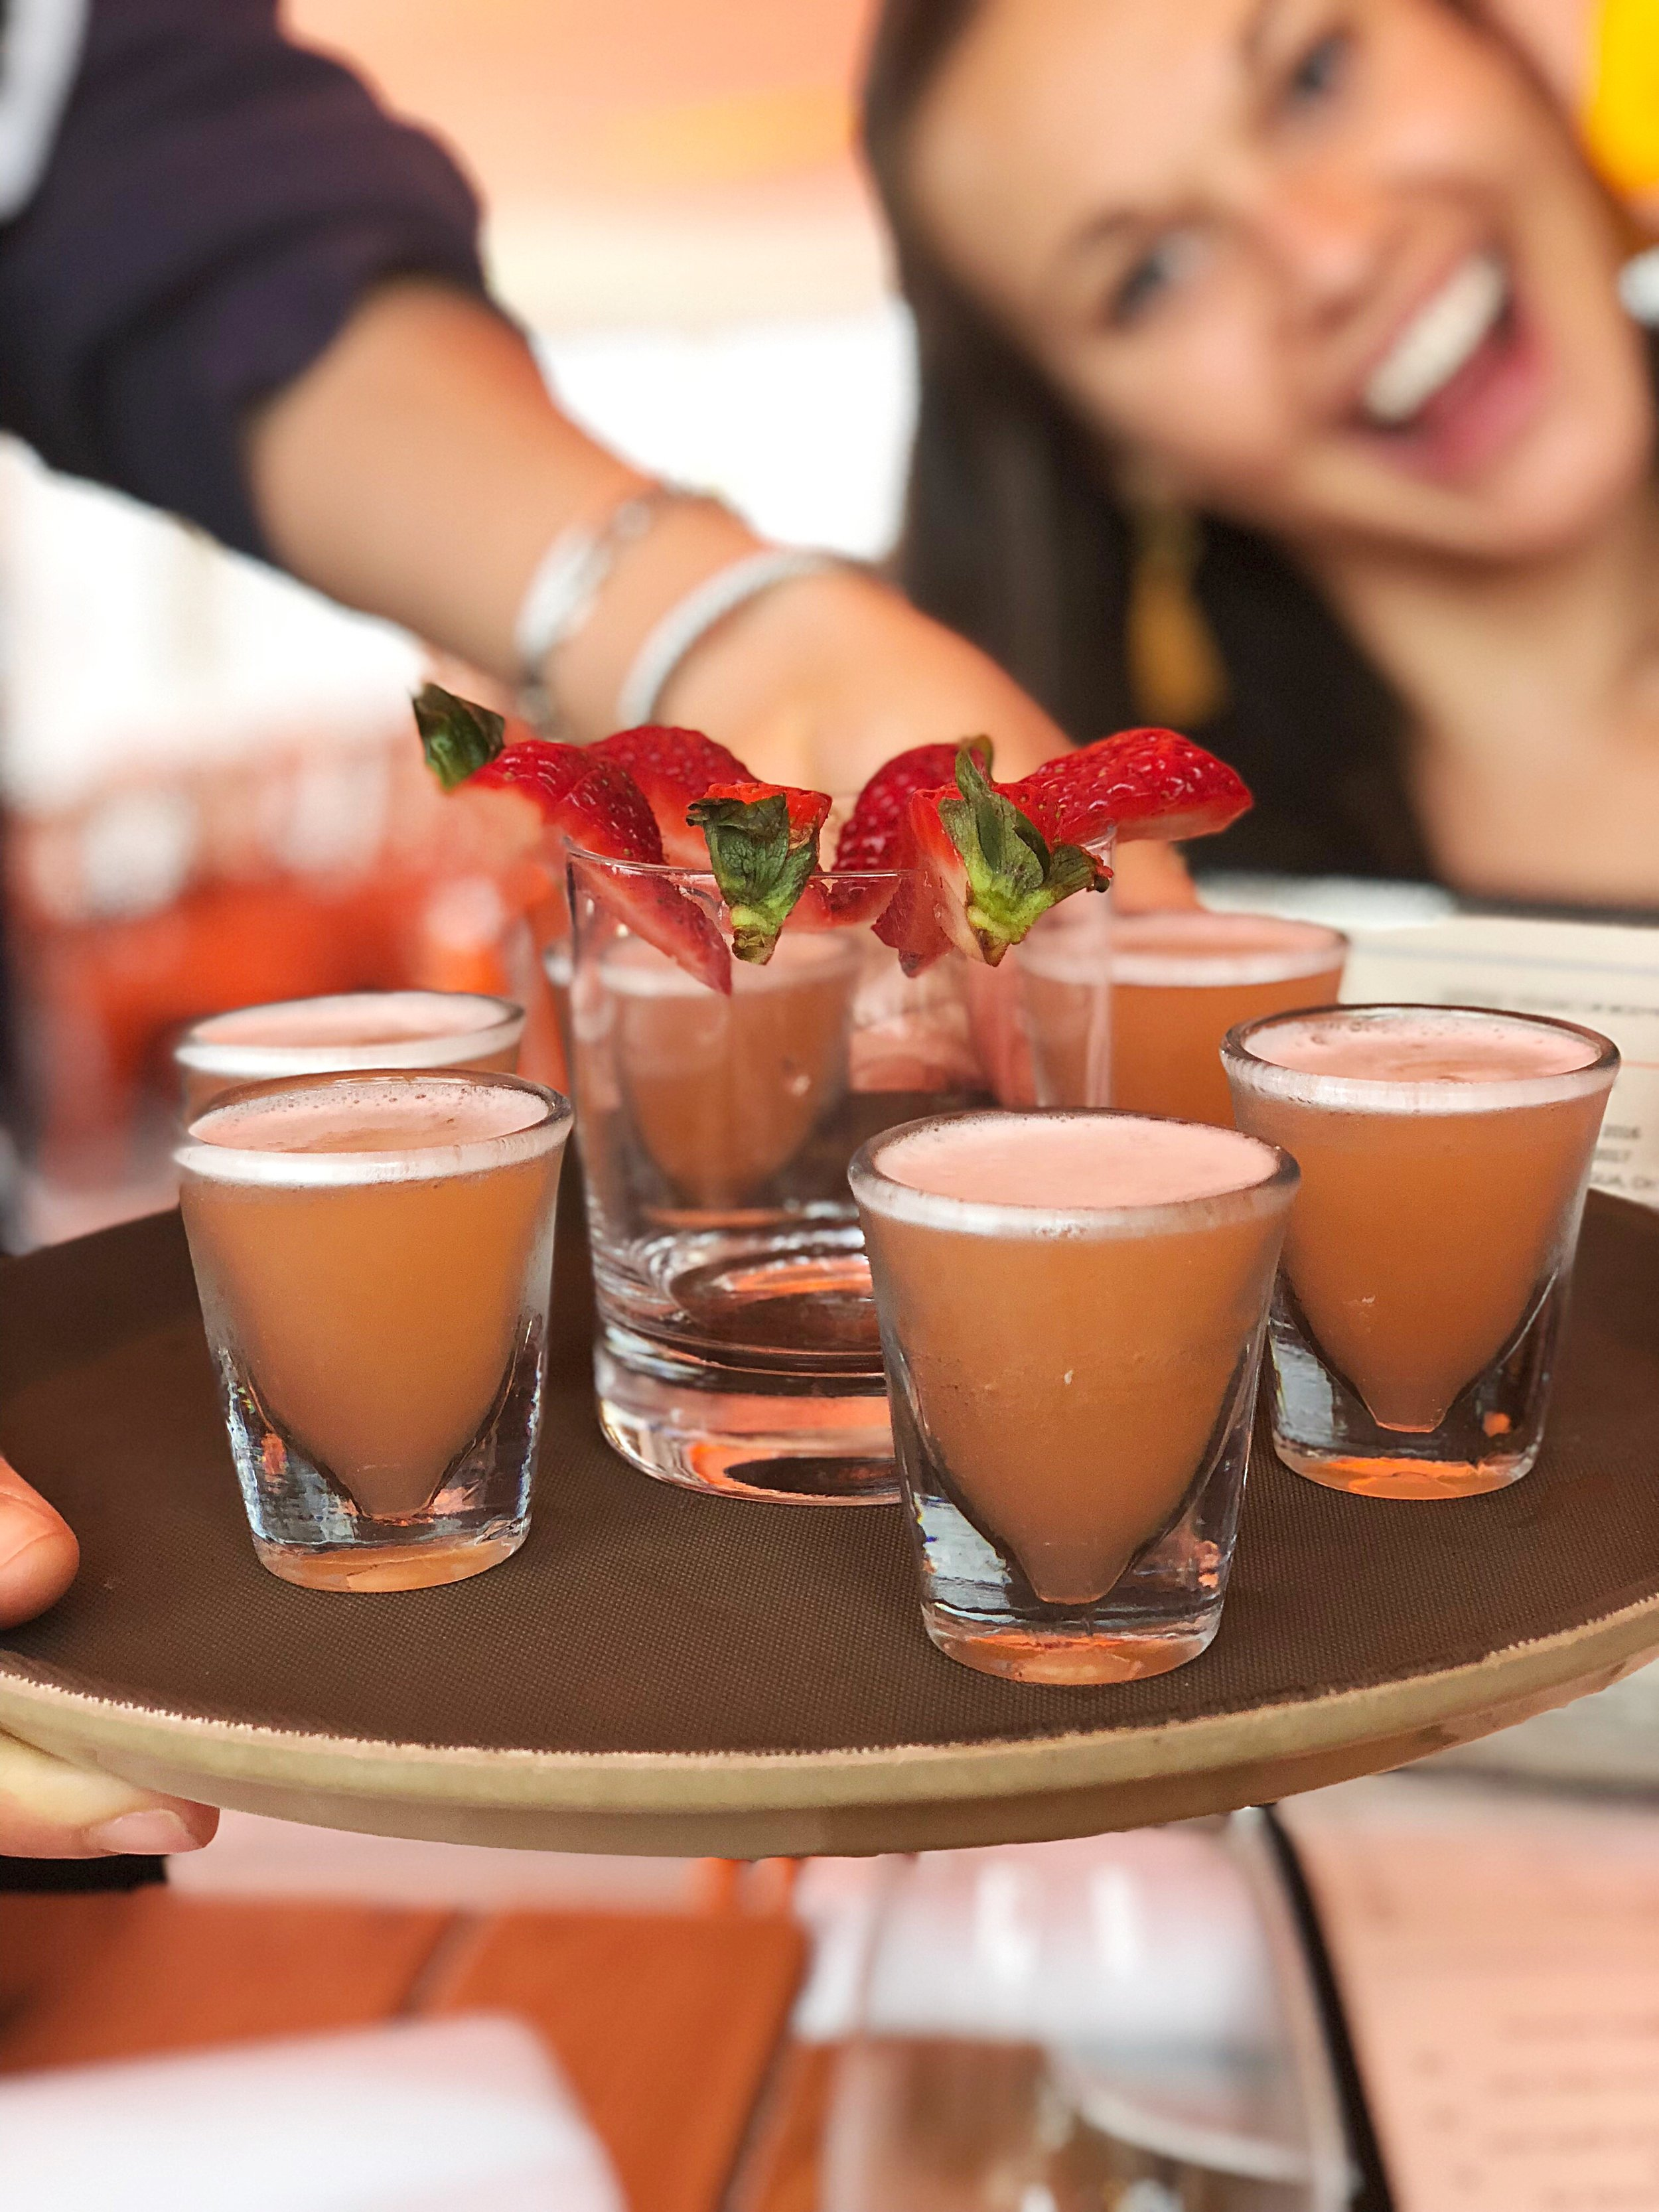 Chilled strawberry and jalapeno infused tequila shooters